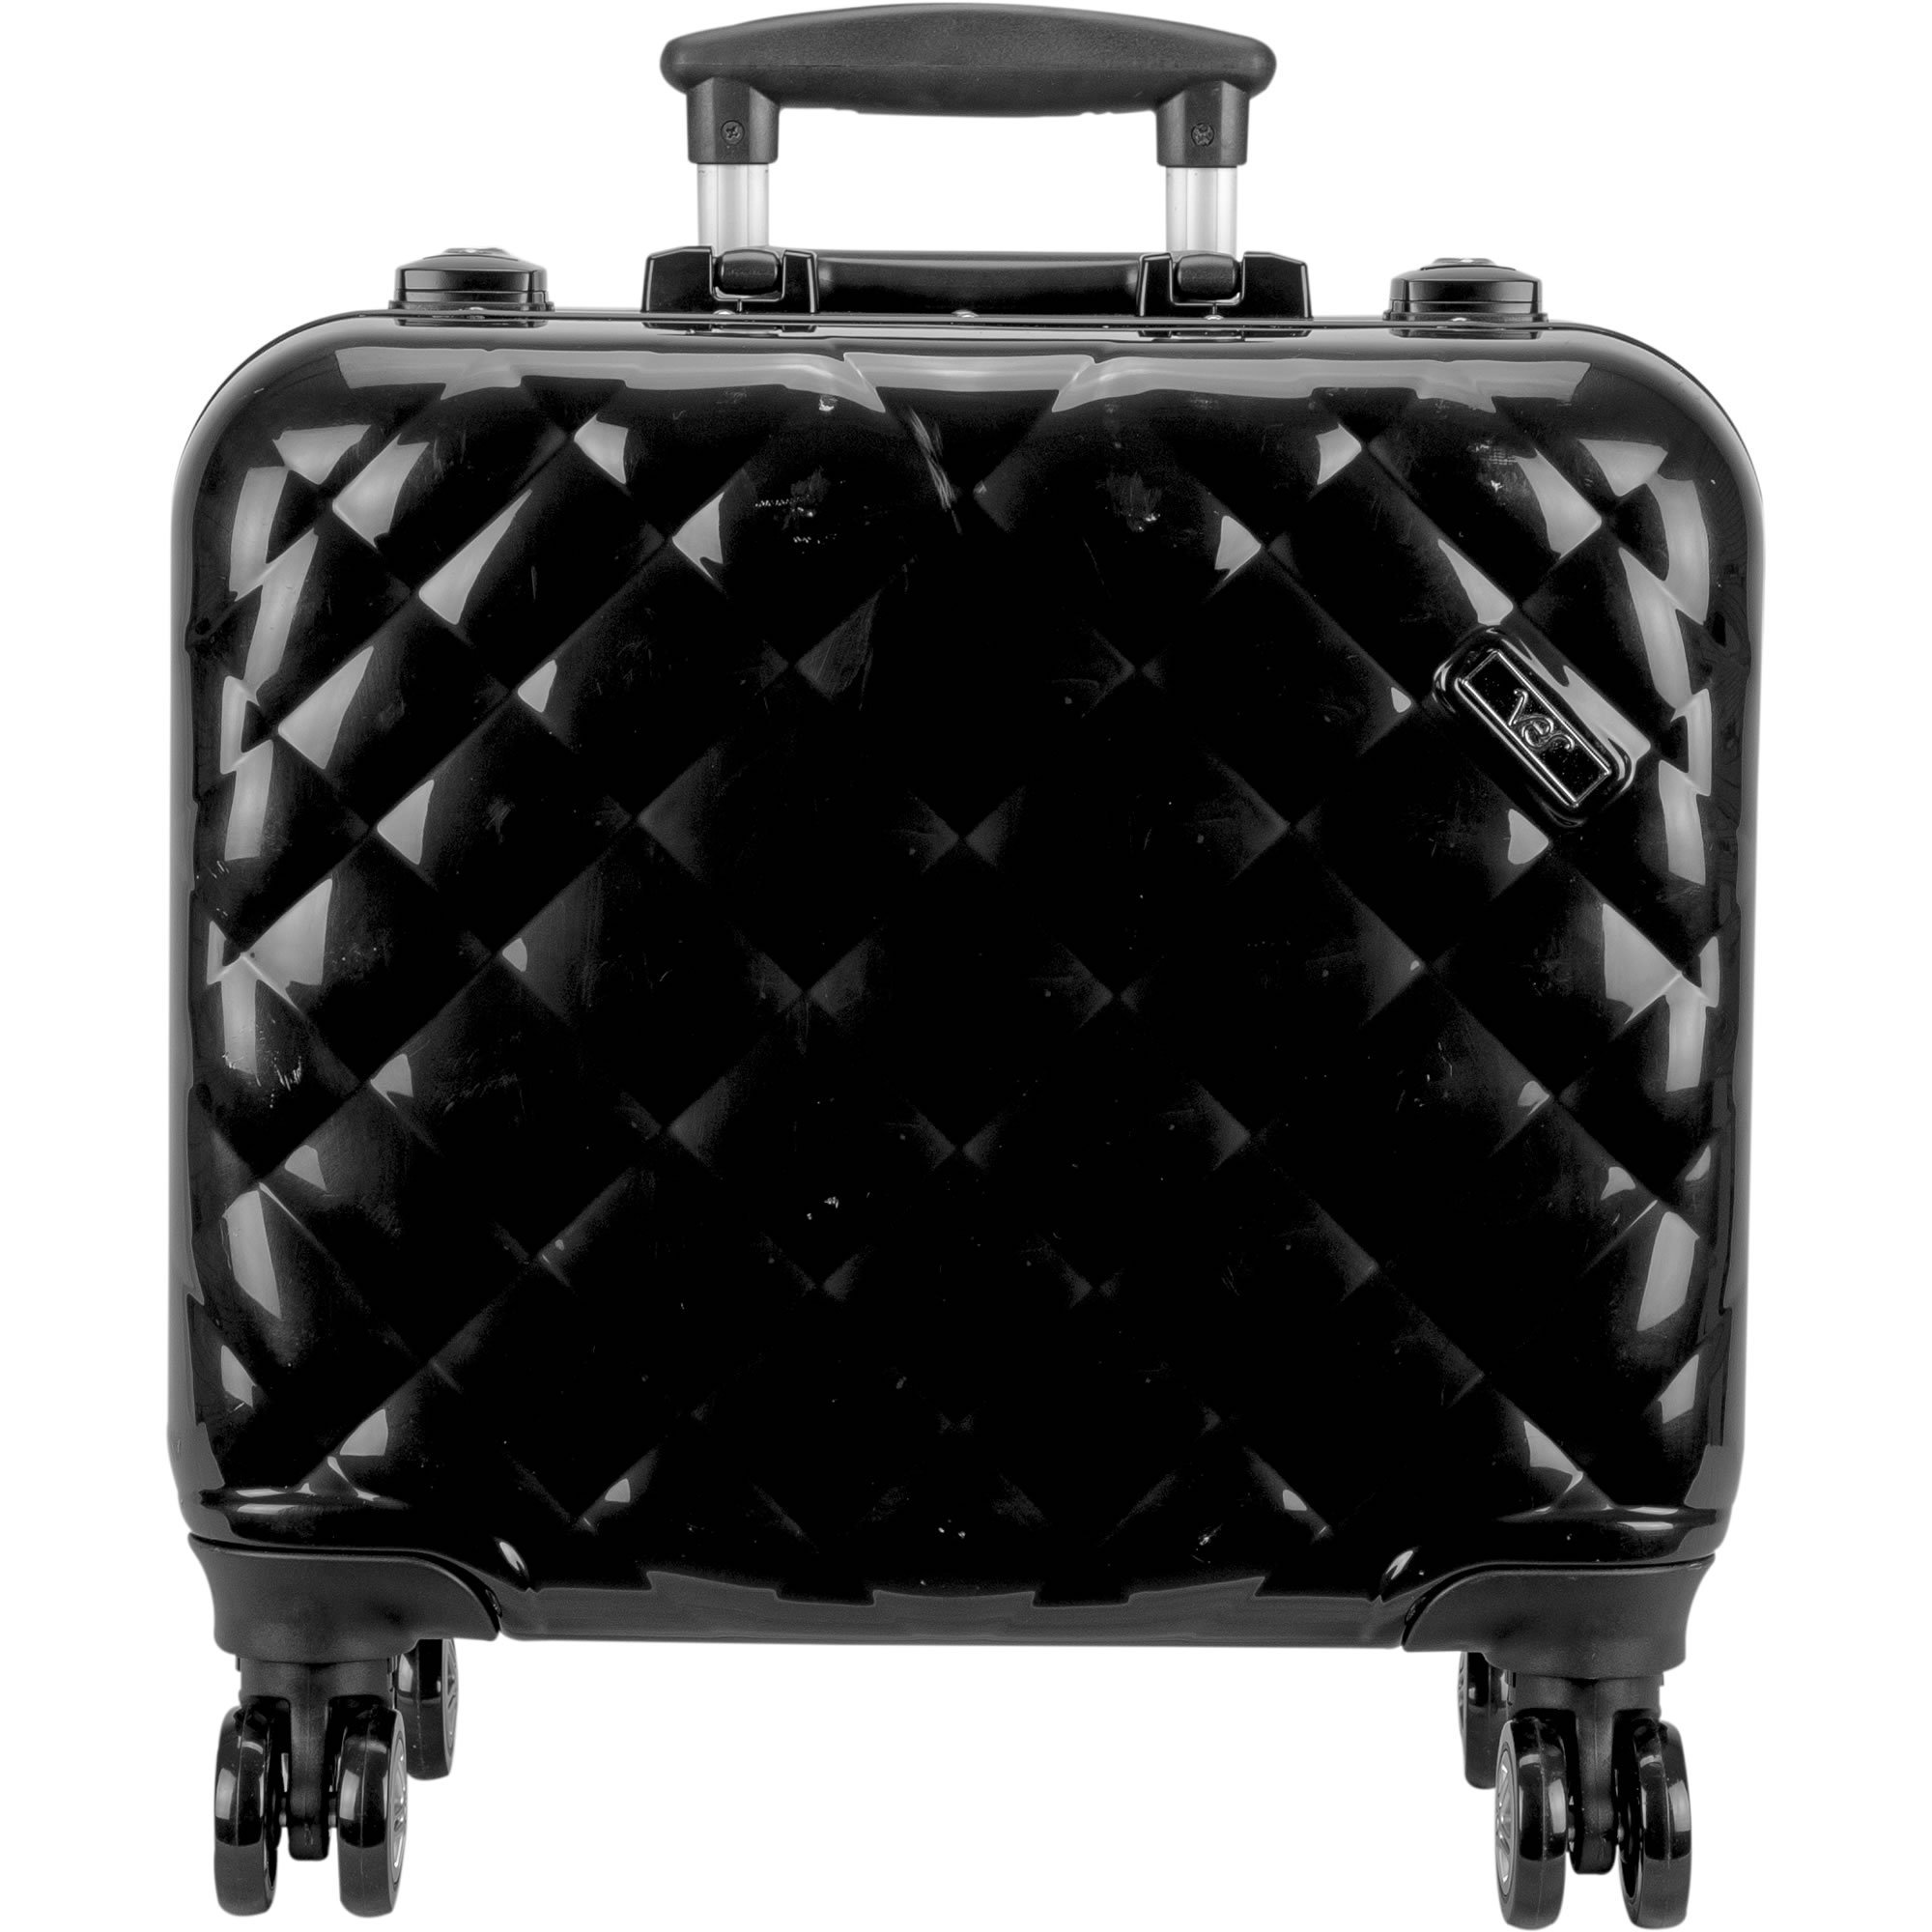 Ver Beauty Professional Travel 4-Wheels Rolling Makeup Studio Case, Quilted Black